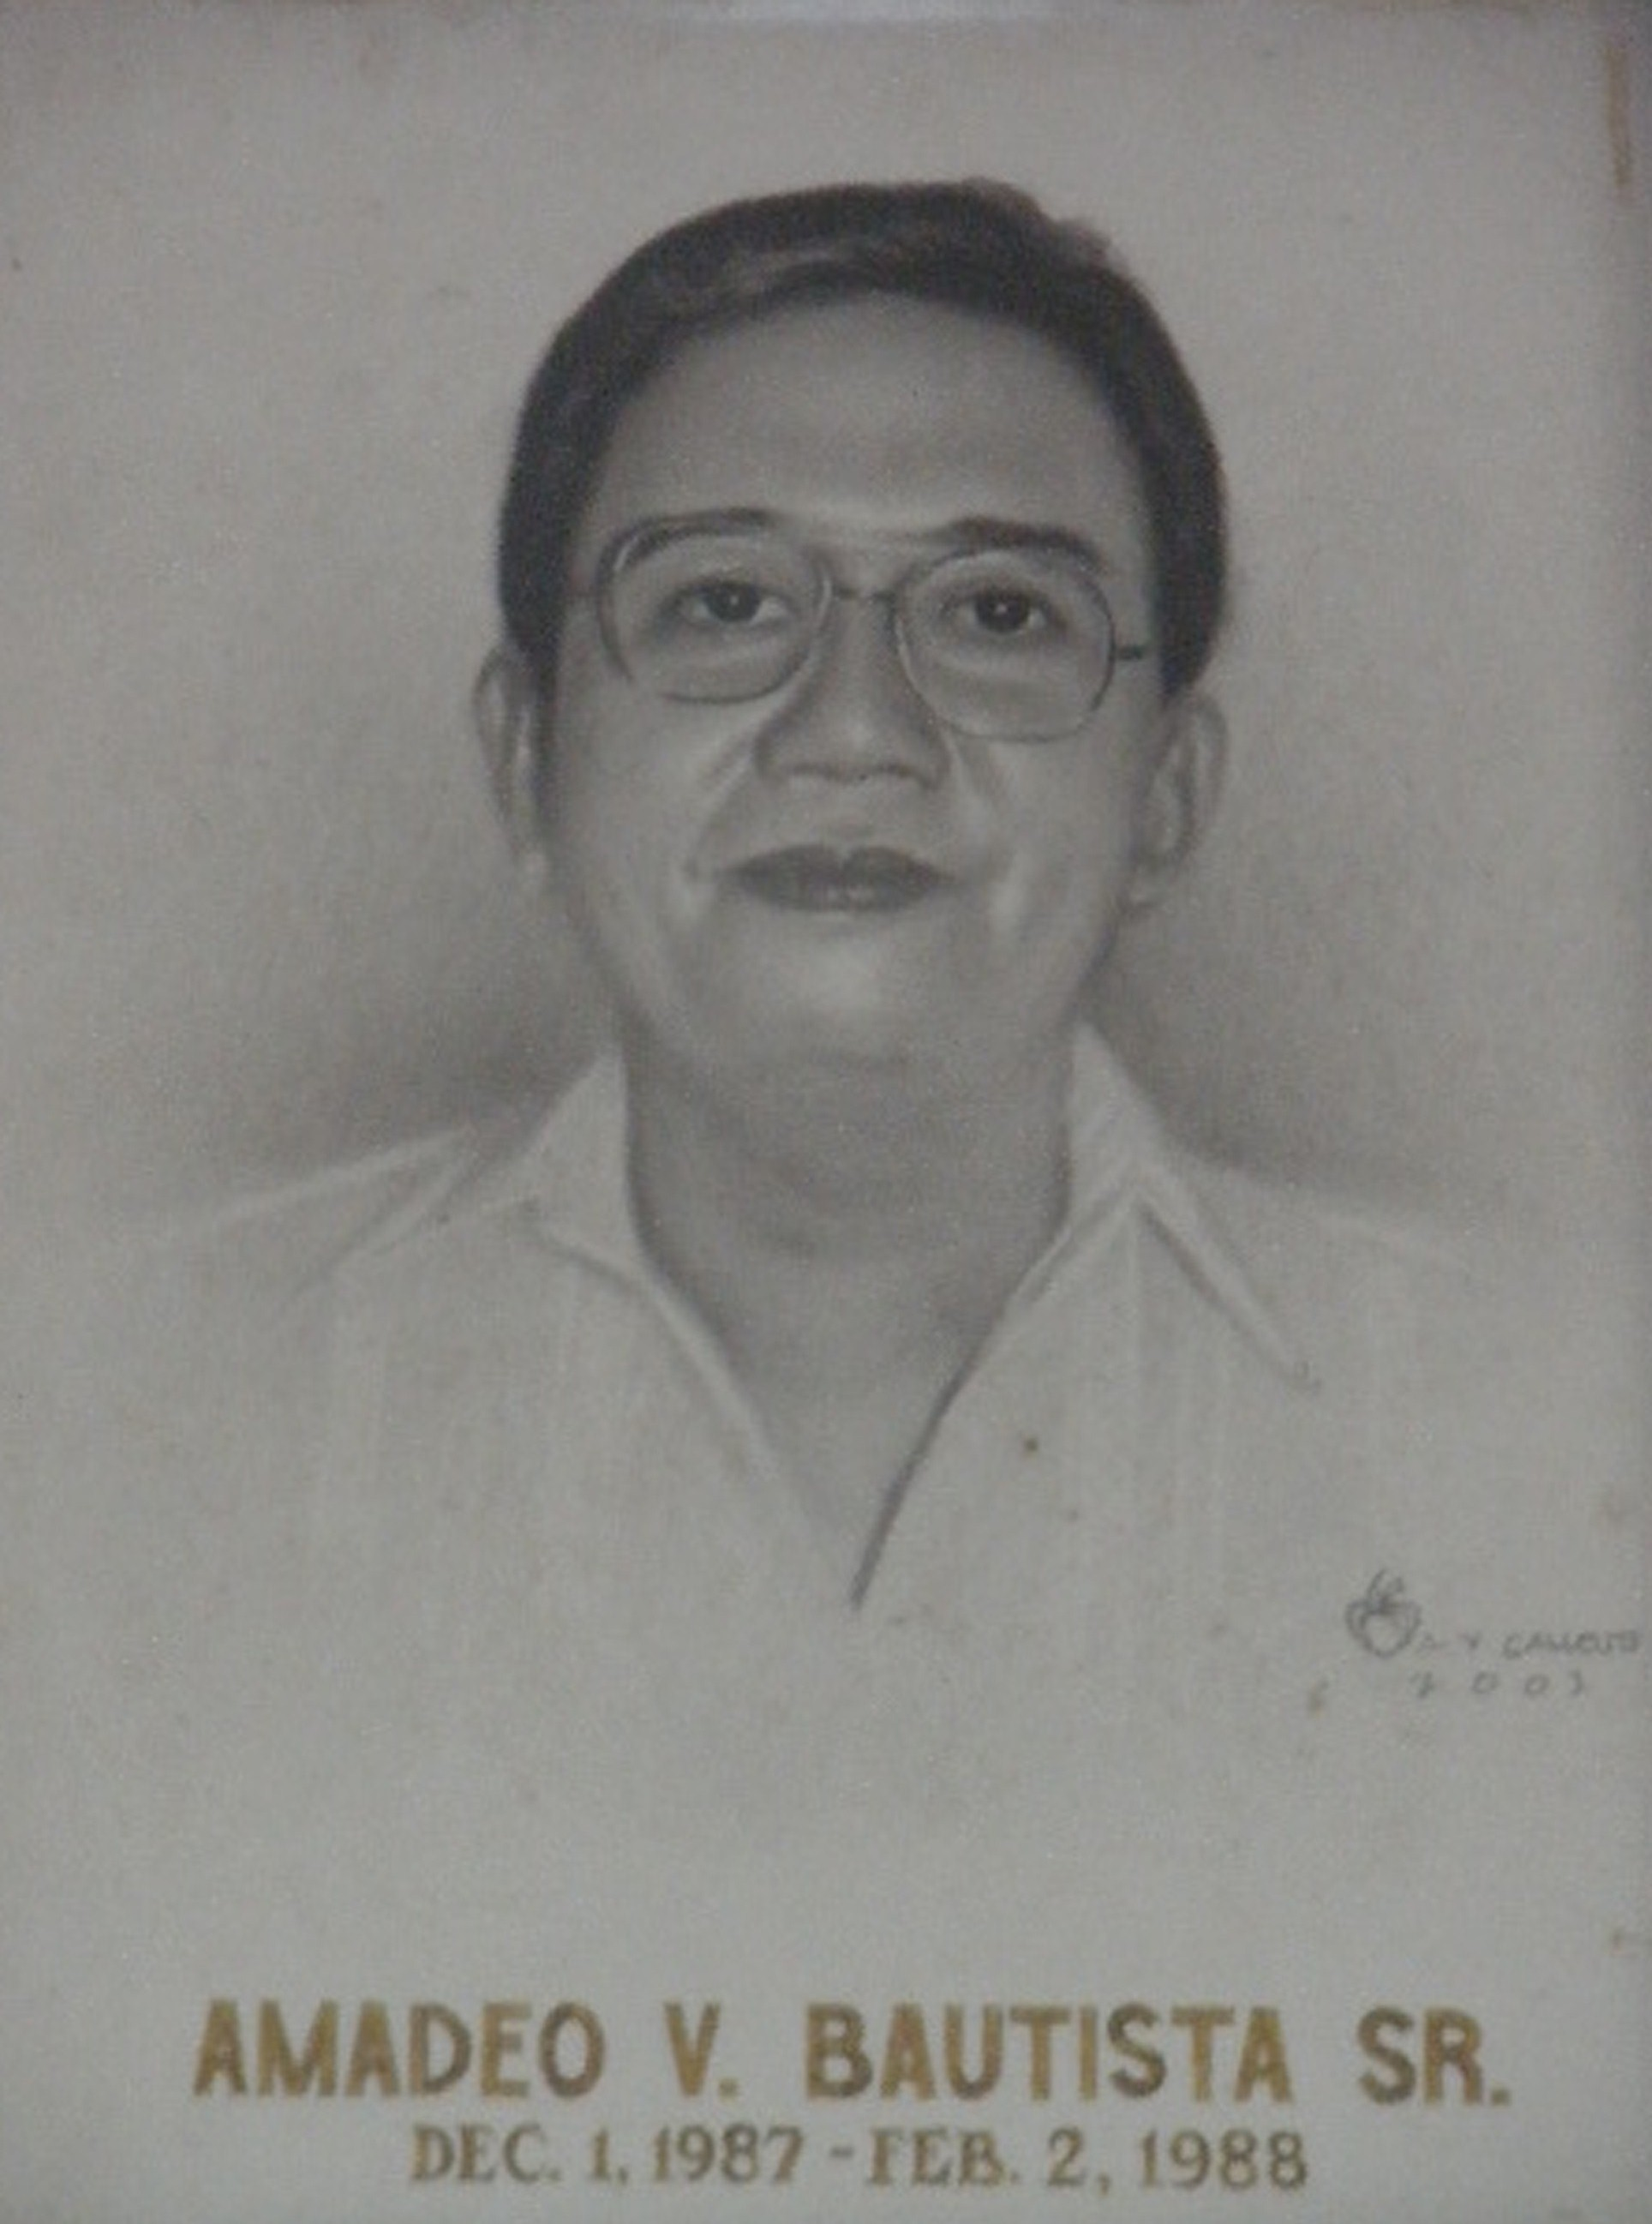 Mayor Amadeo Bautista Sr (Dec 7 1987-Feb 2 1988)